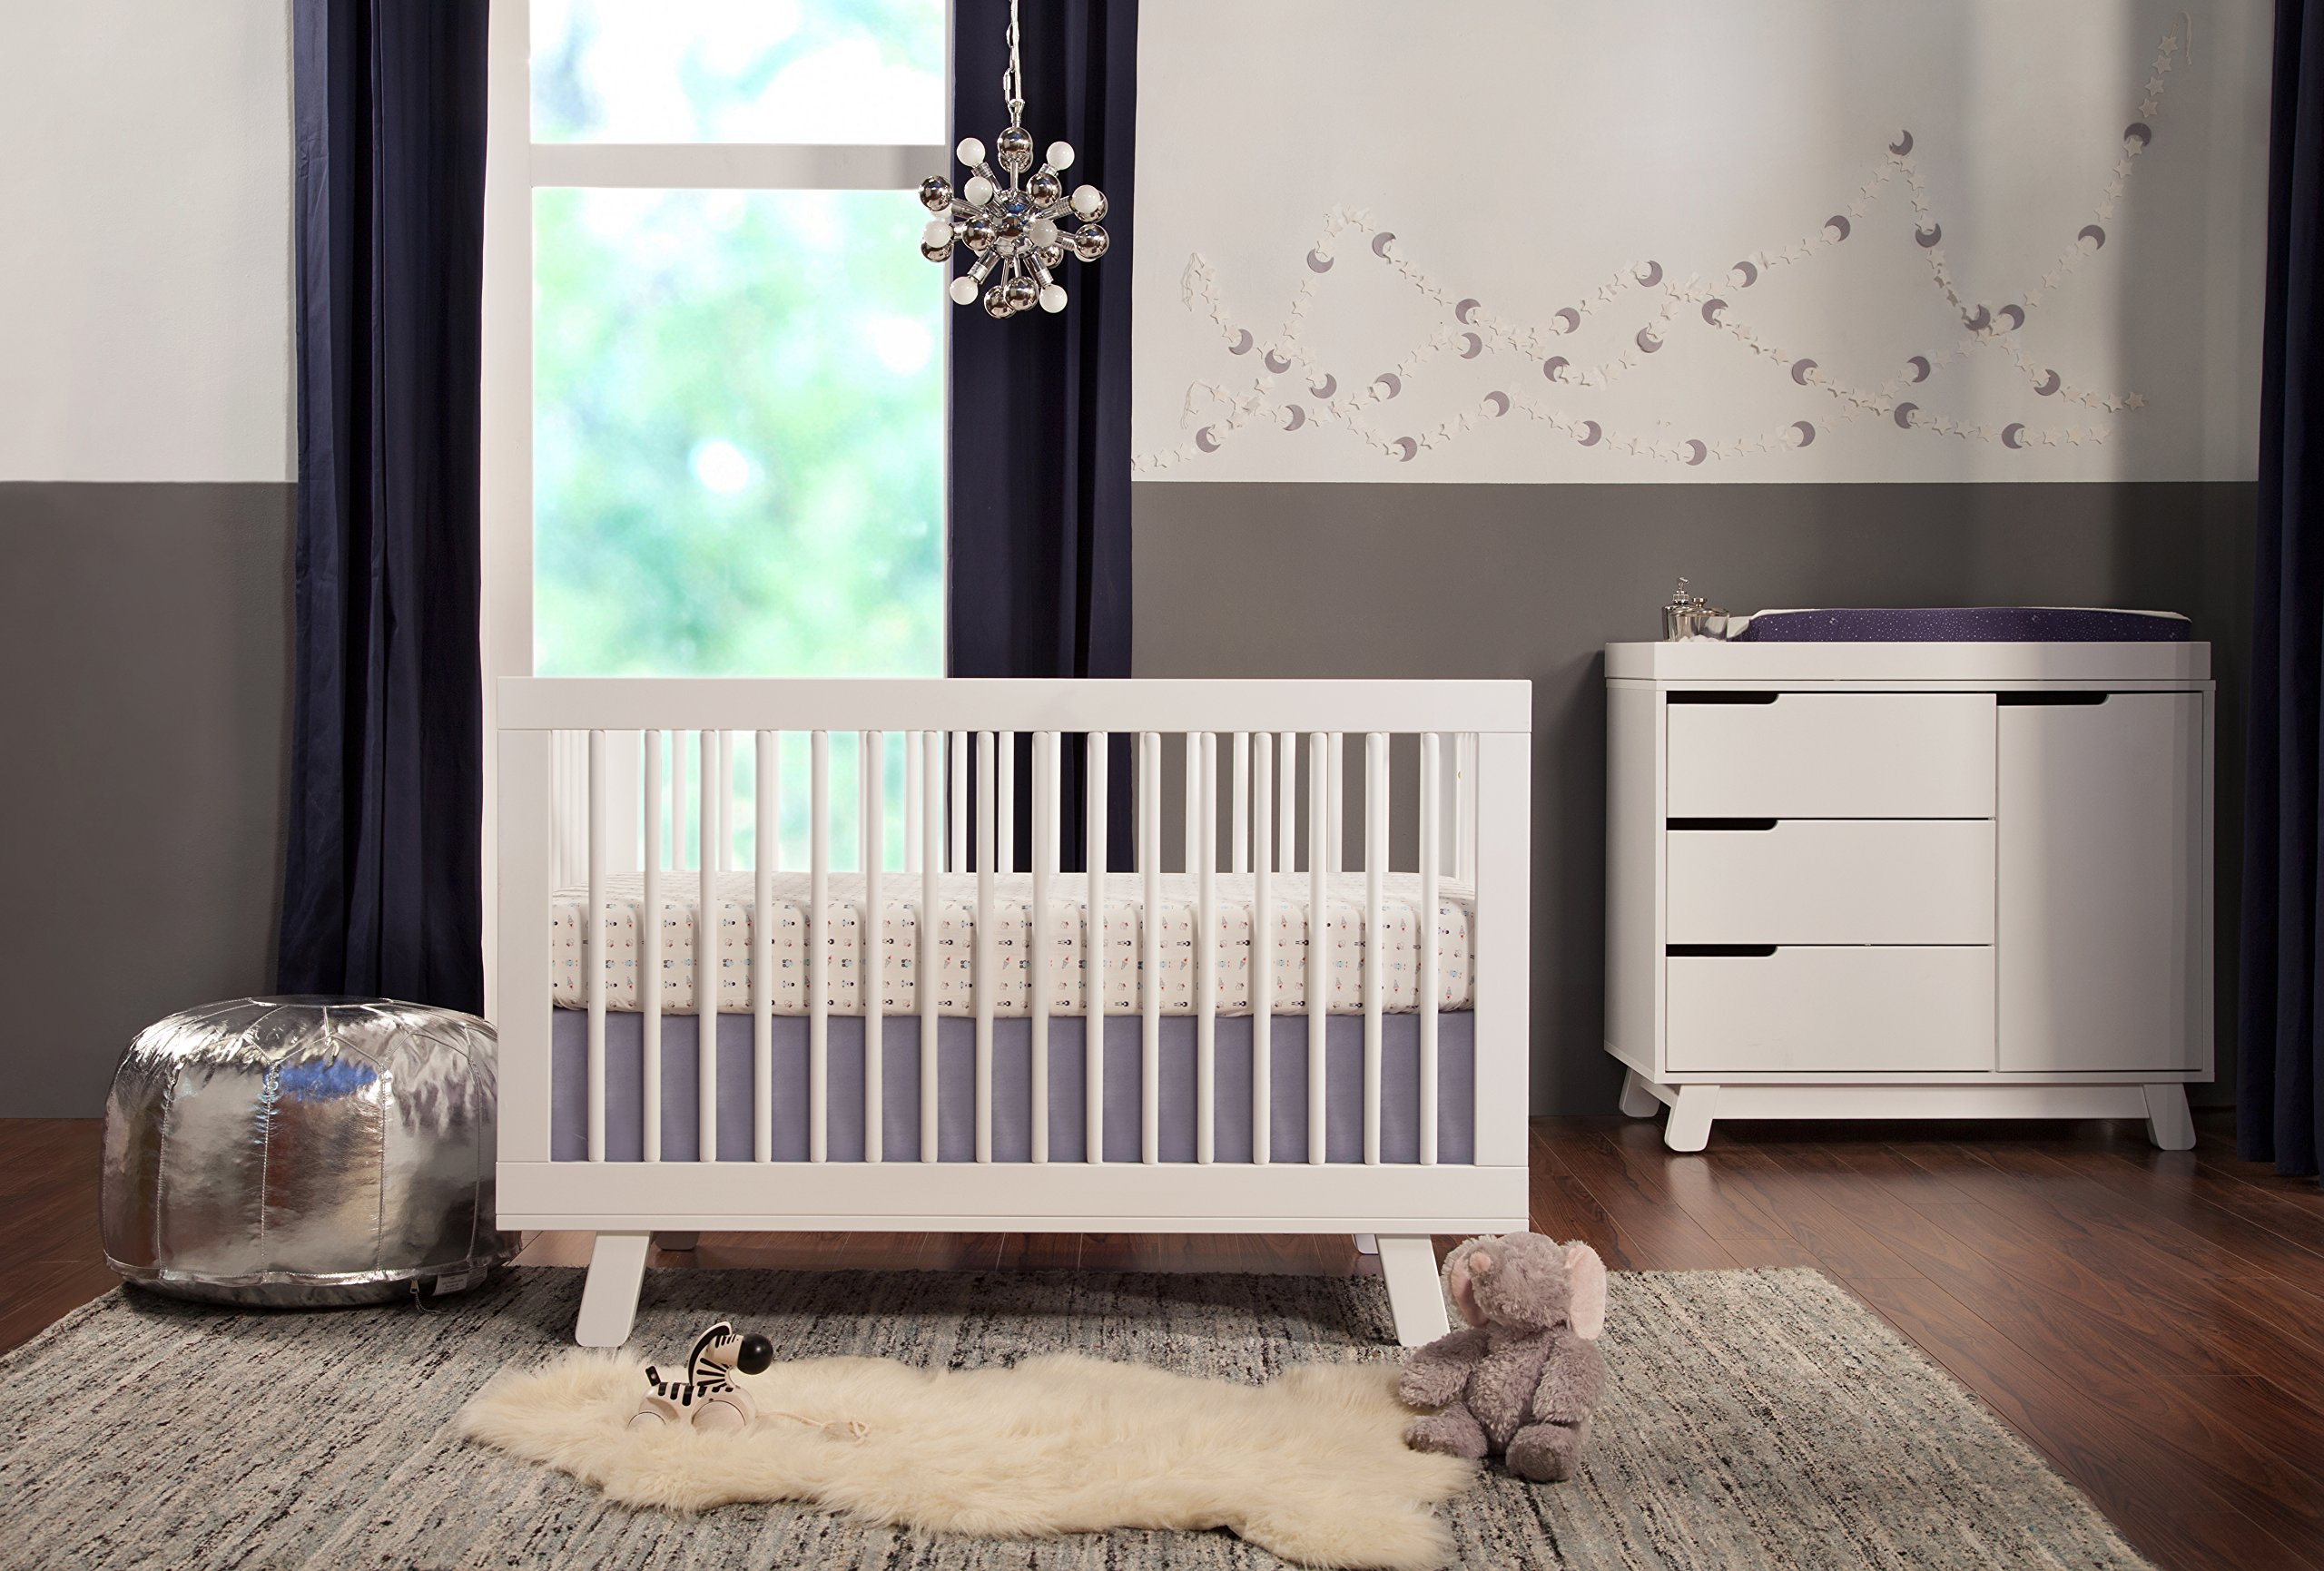 Babyletto Hudson 3-in-1 Convertible Crib with Toddler Bed Conversion Kit, White by babyletto (Image #5)